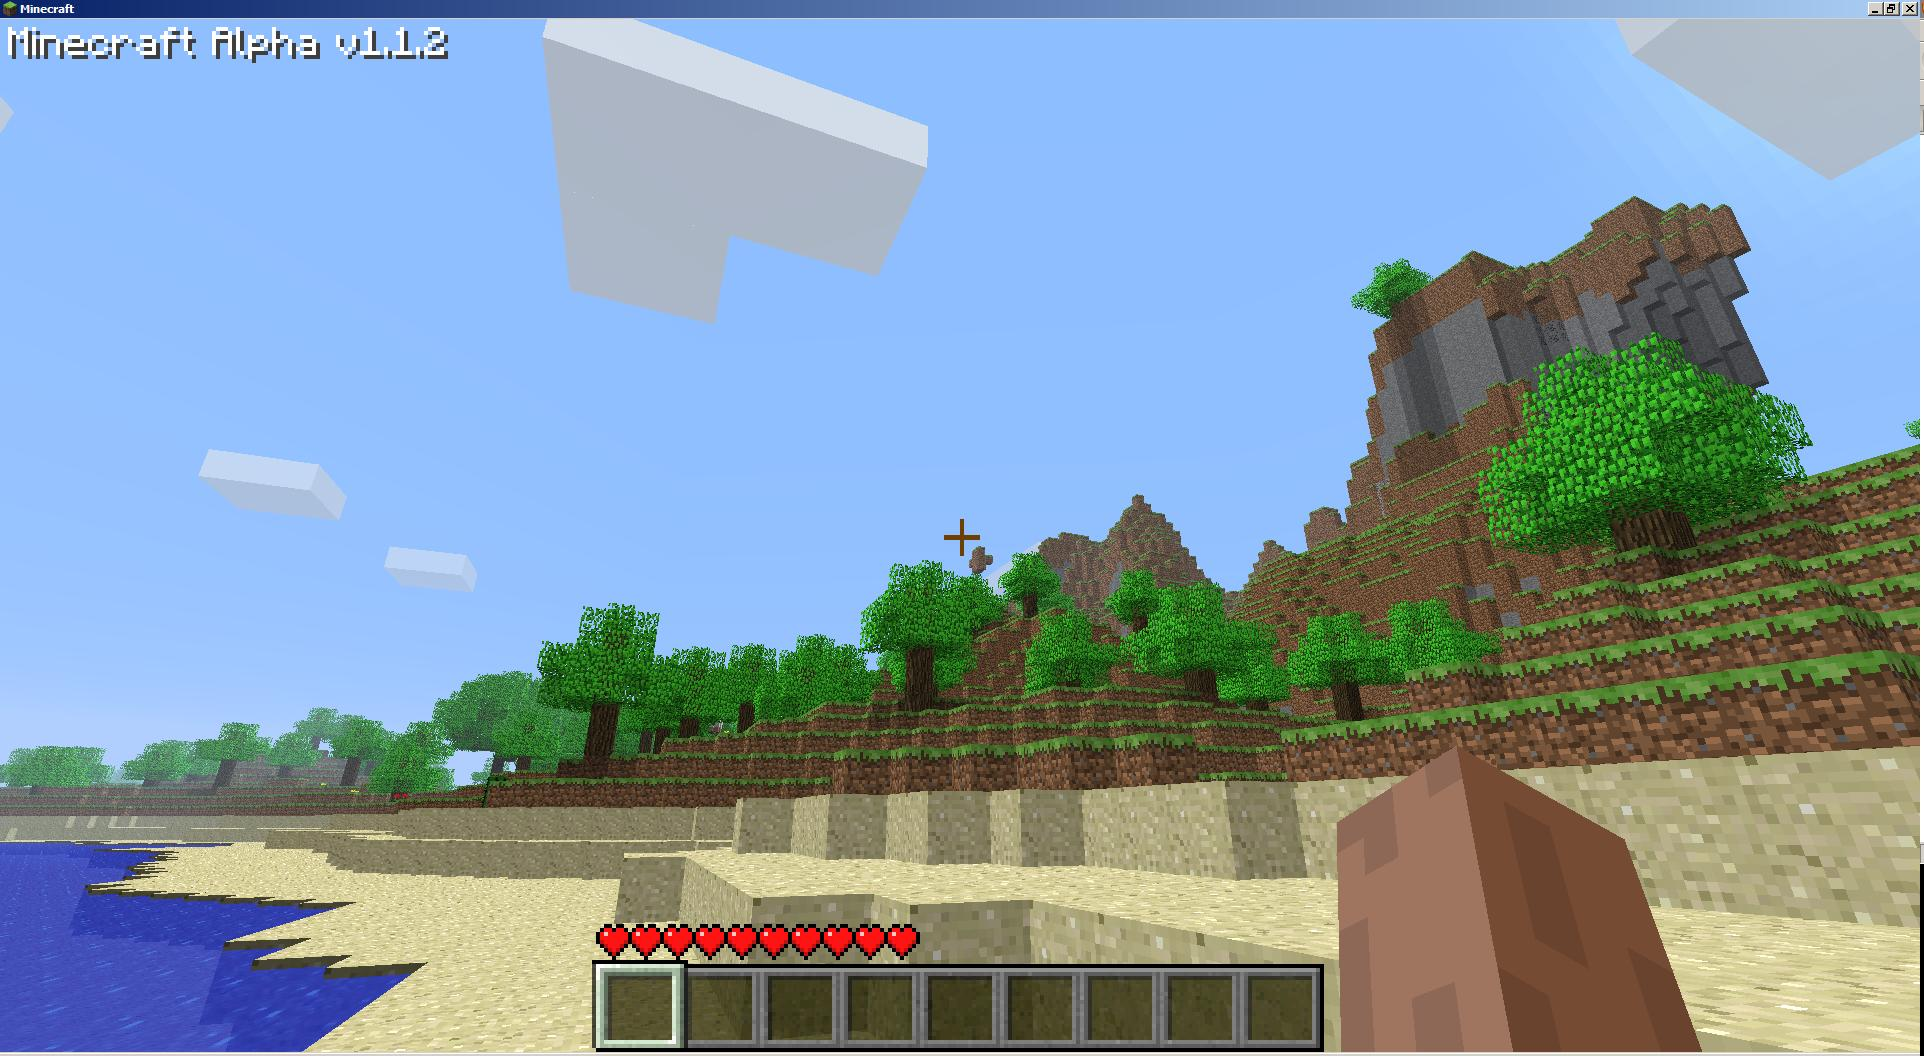 Minecraft starts you off in its blocky world with little indication of what you're supposed to do. That's part of its charm.